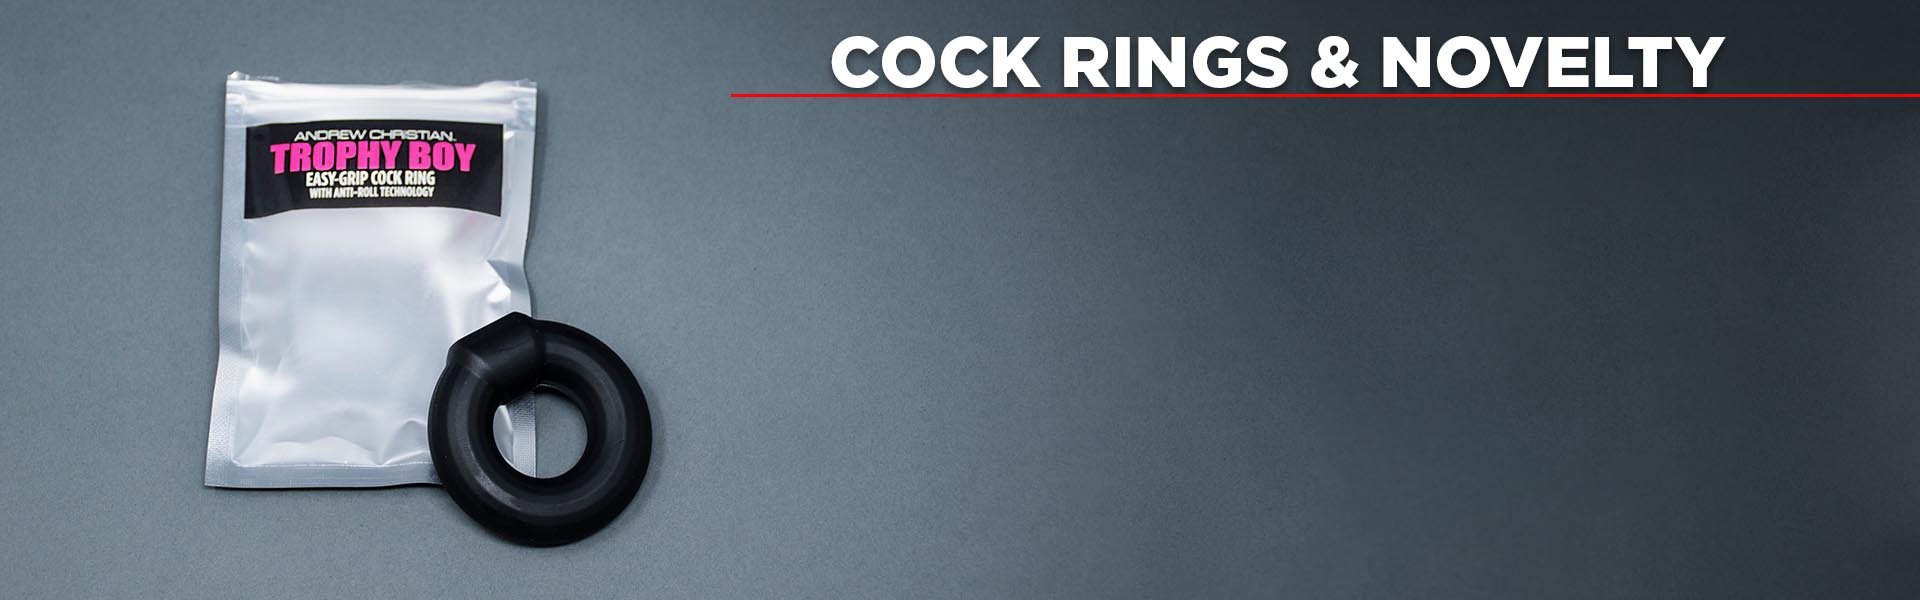 Cock Rings & Novelty - NEW